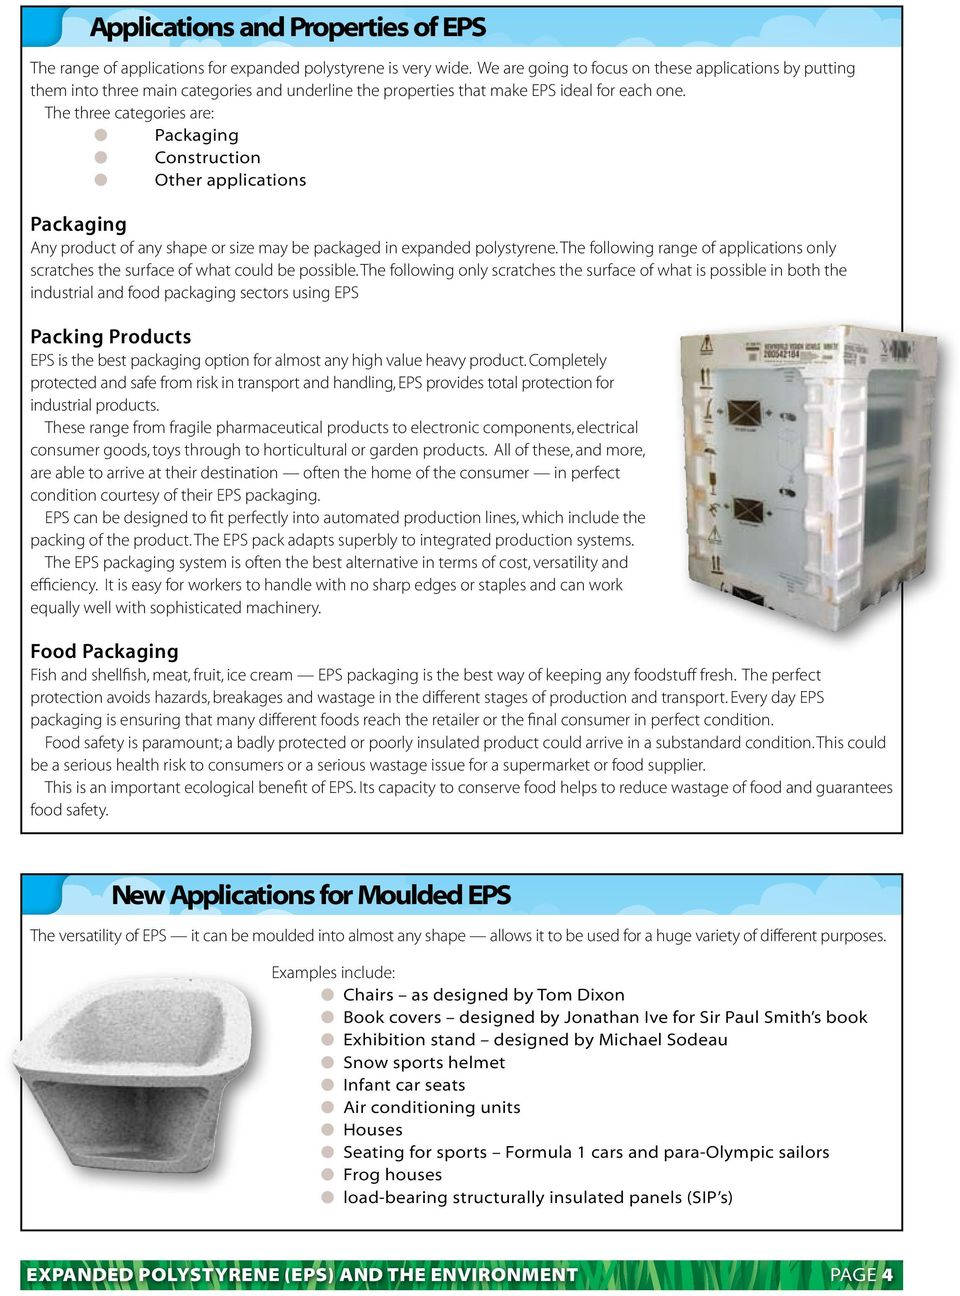 Expanded Polystyrene (EPS) and the Environment - PDF